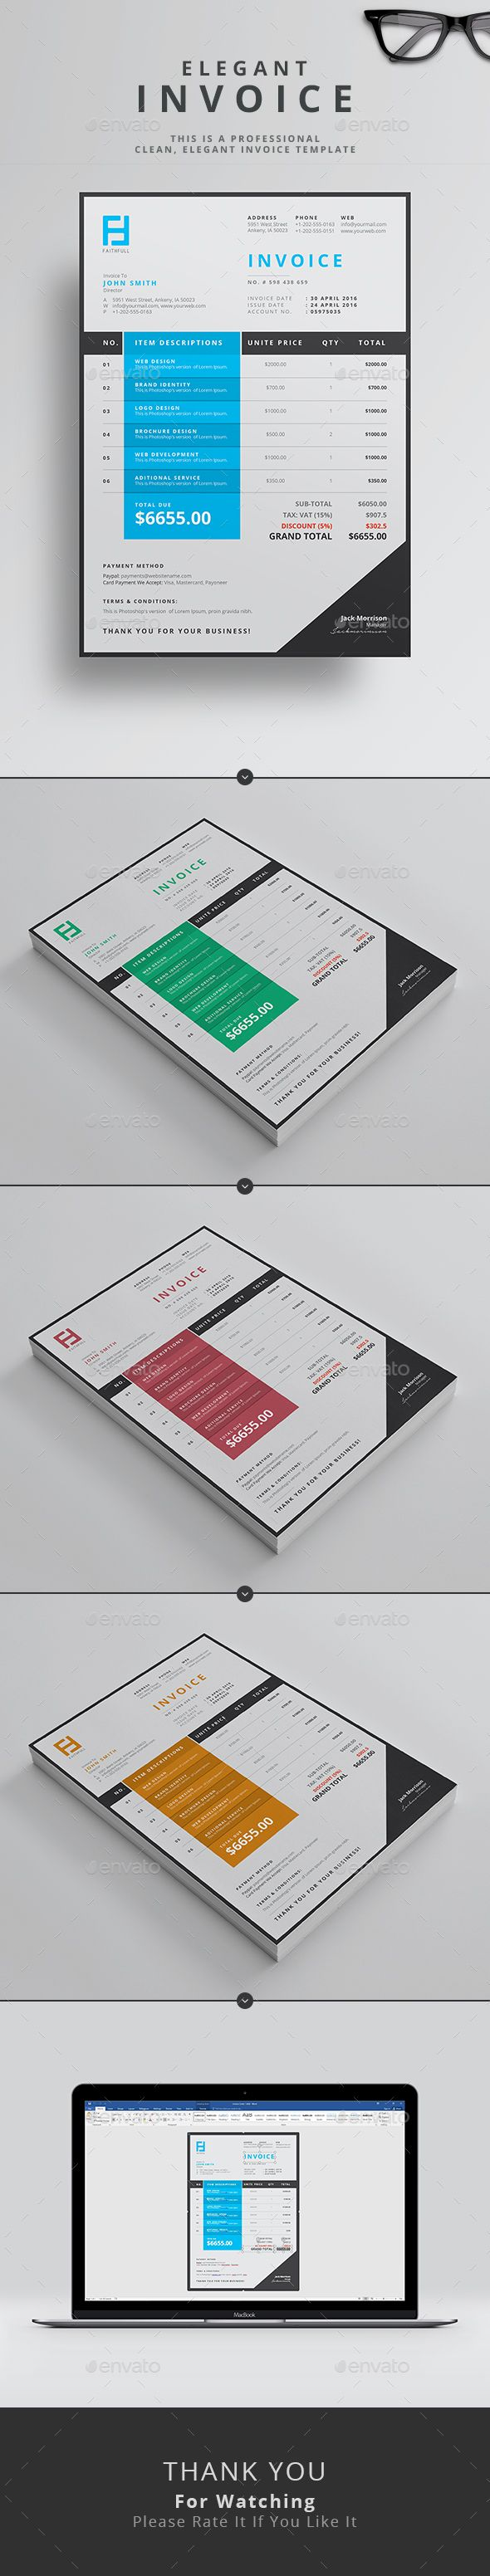 Proposal Template Microsoft Word 12 Best Invoice Templates Images On Pinterest  Invoice Template .